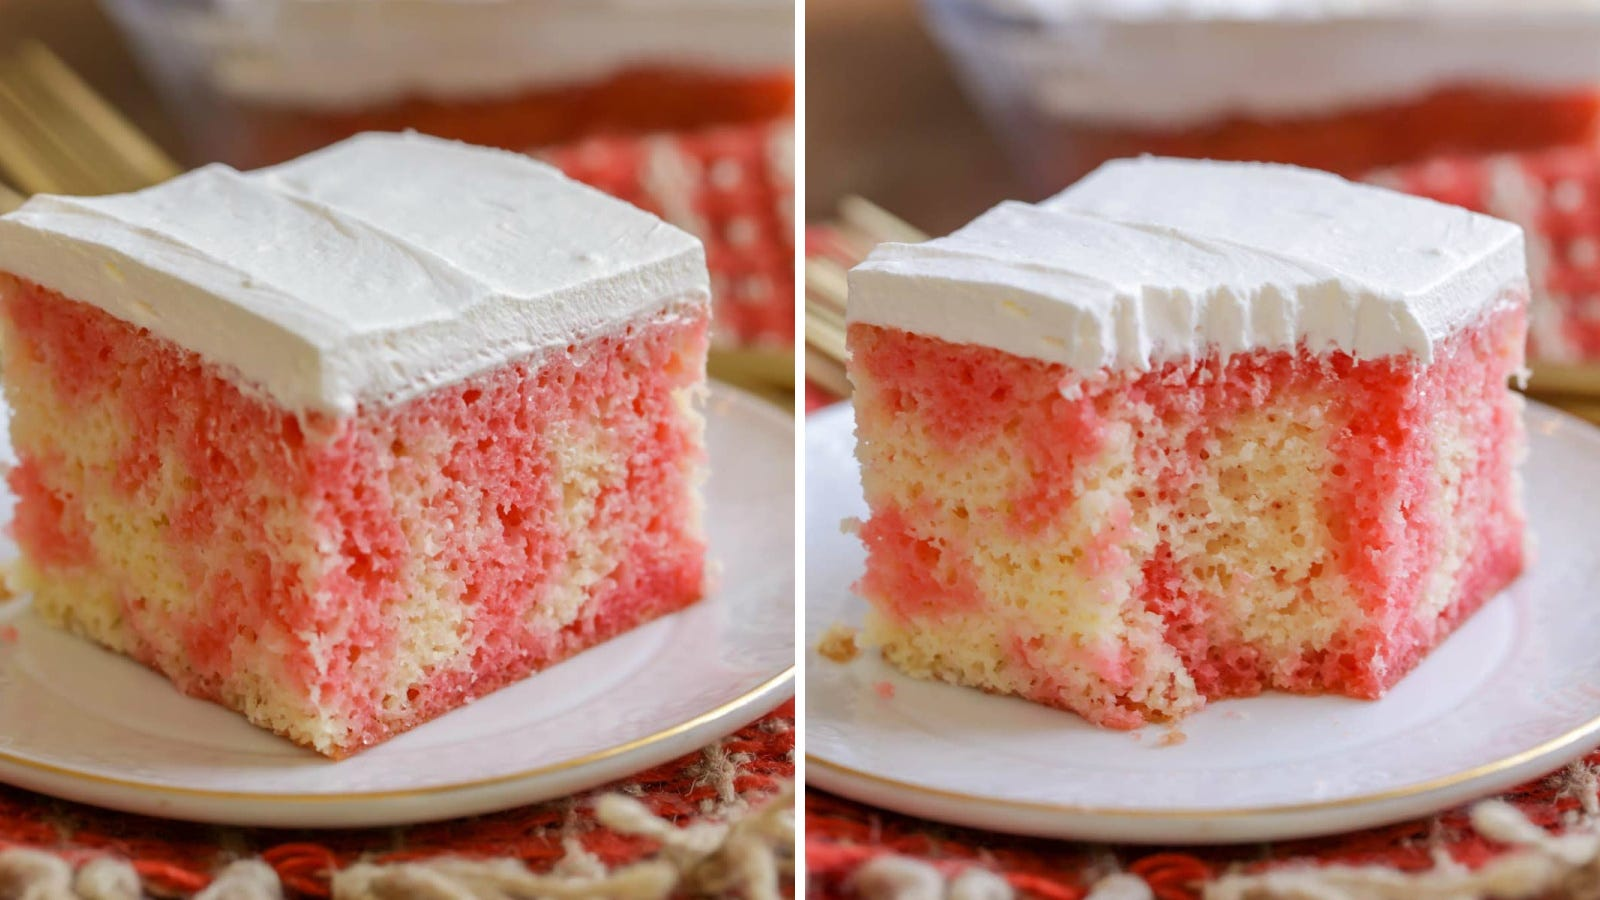 Two images of strawberry Jell-O Poke cake.